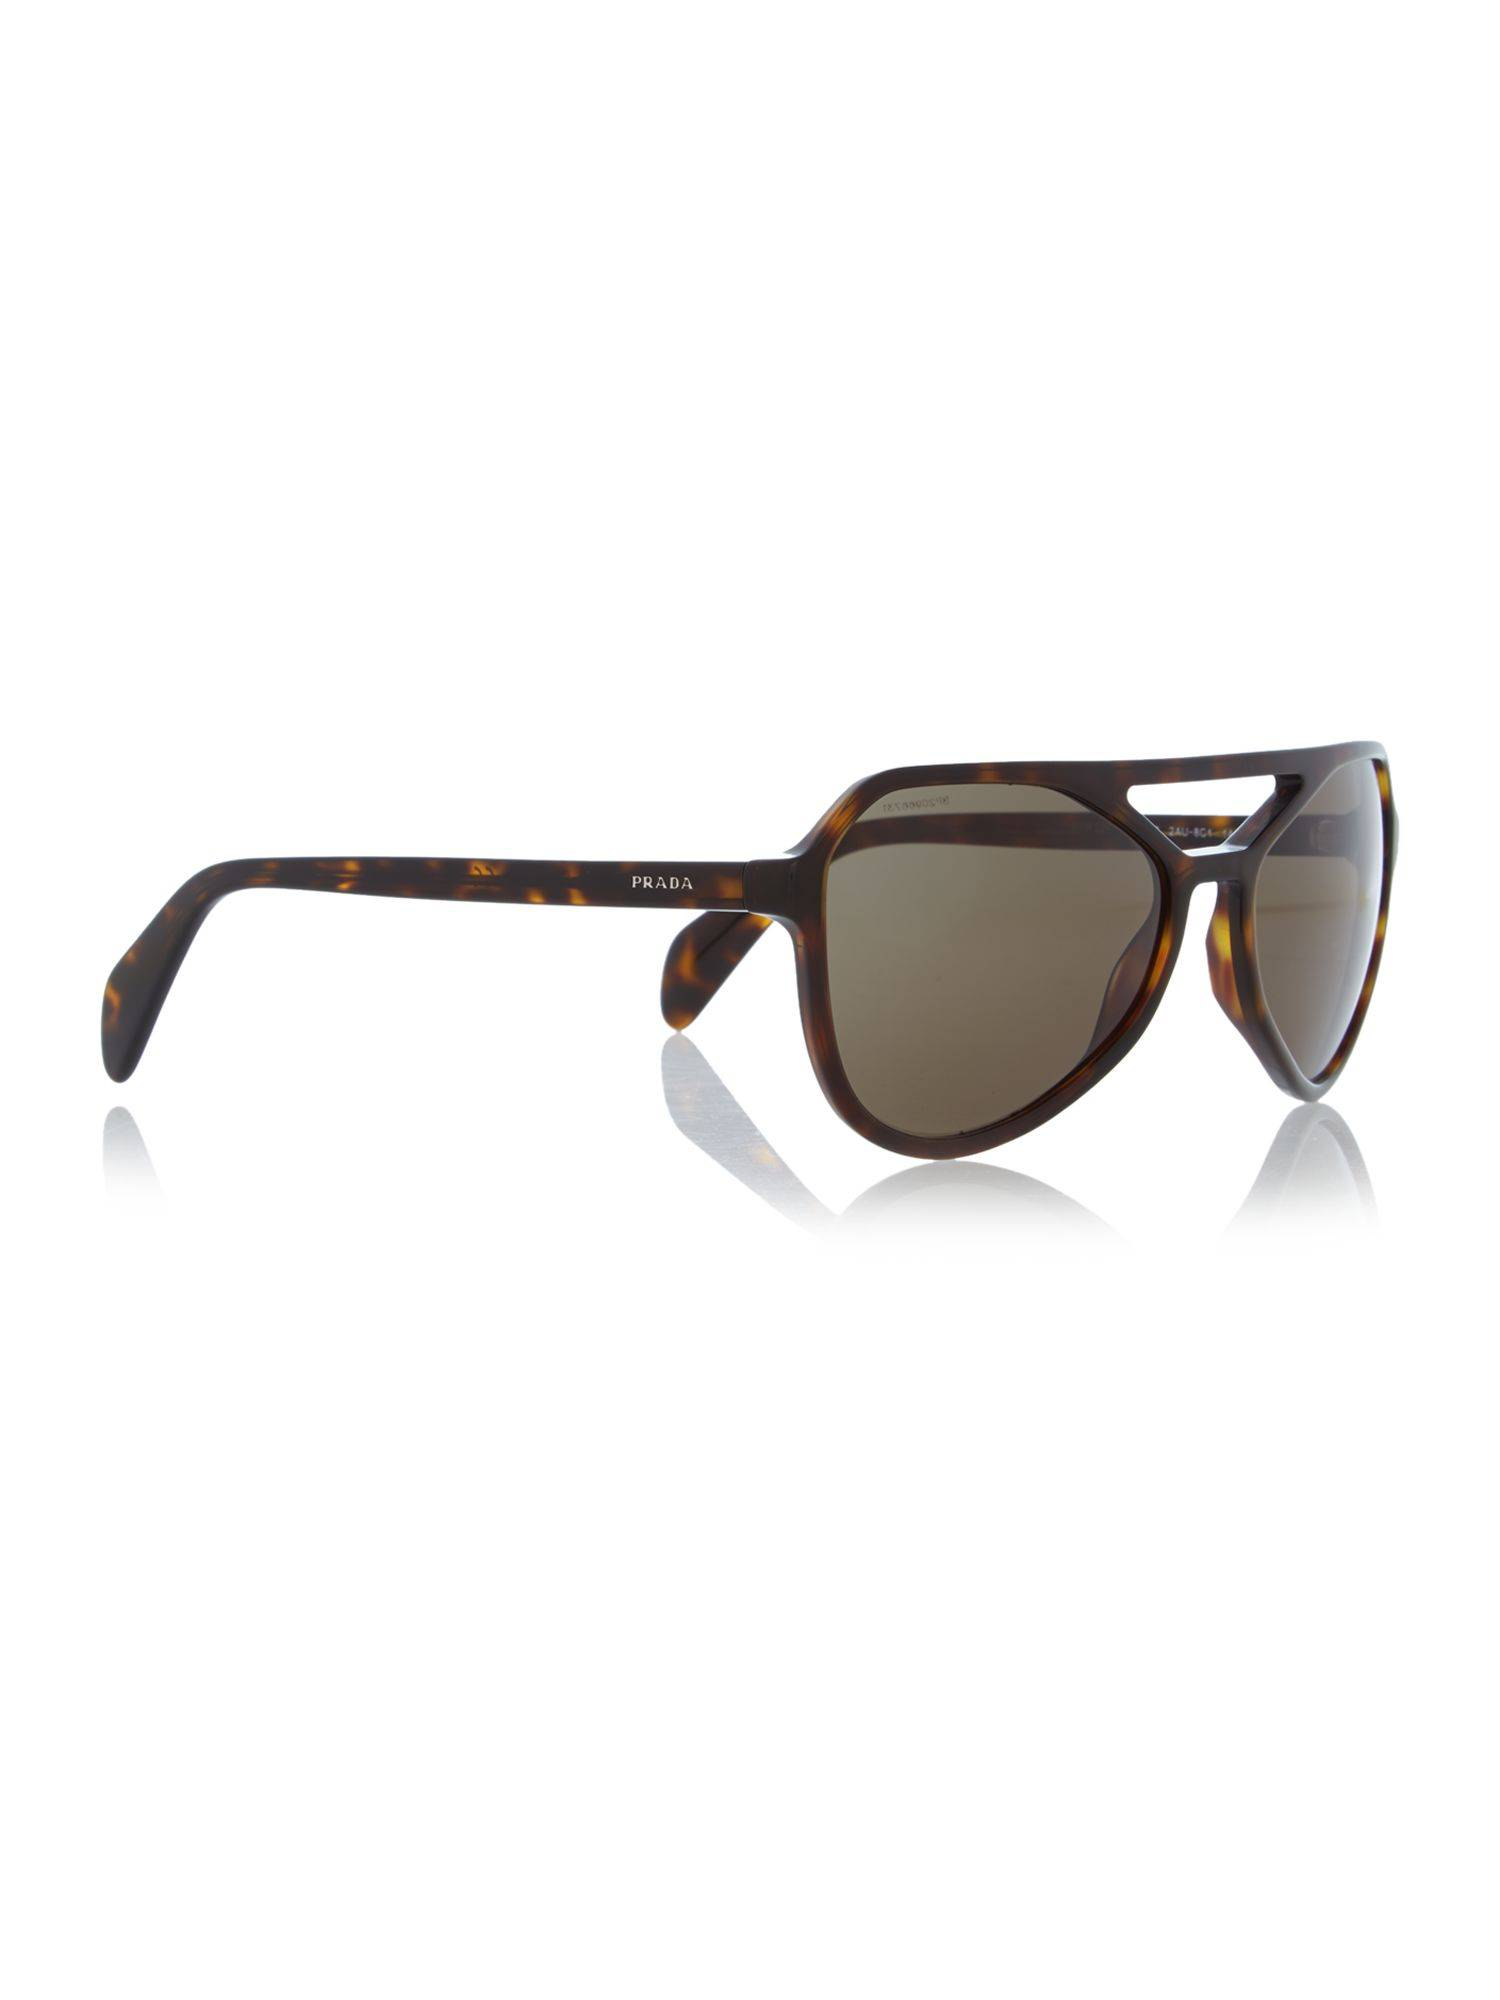 Prada Sunglasses PR 22RS aviator sunglasses